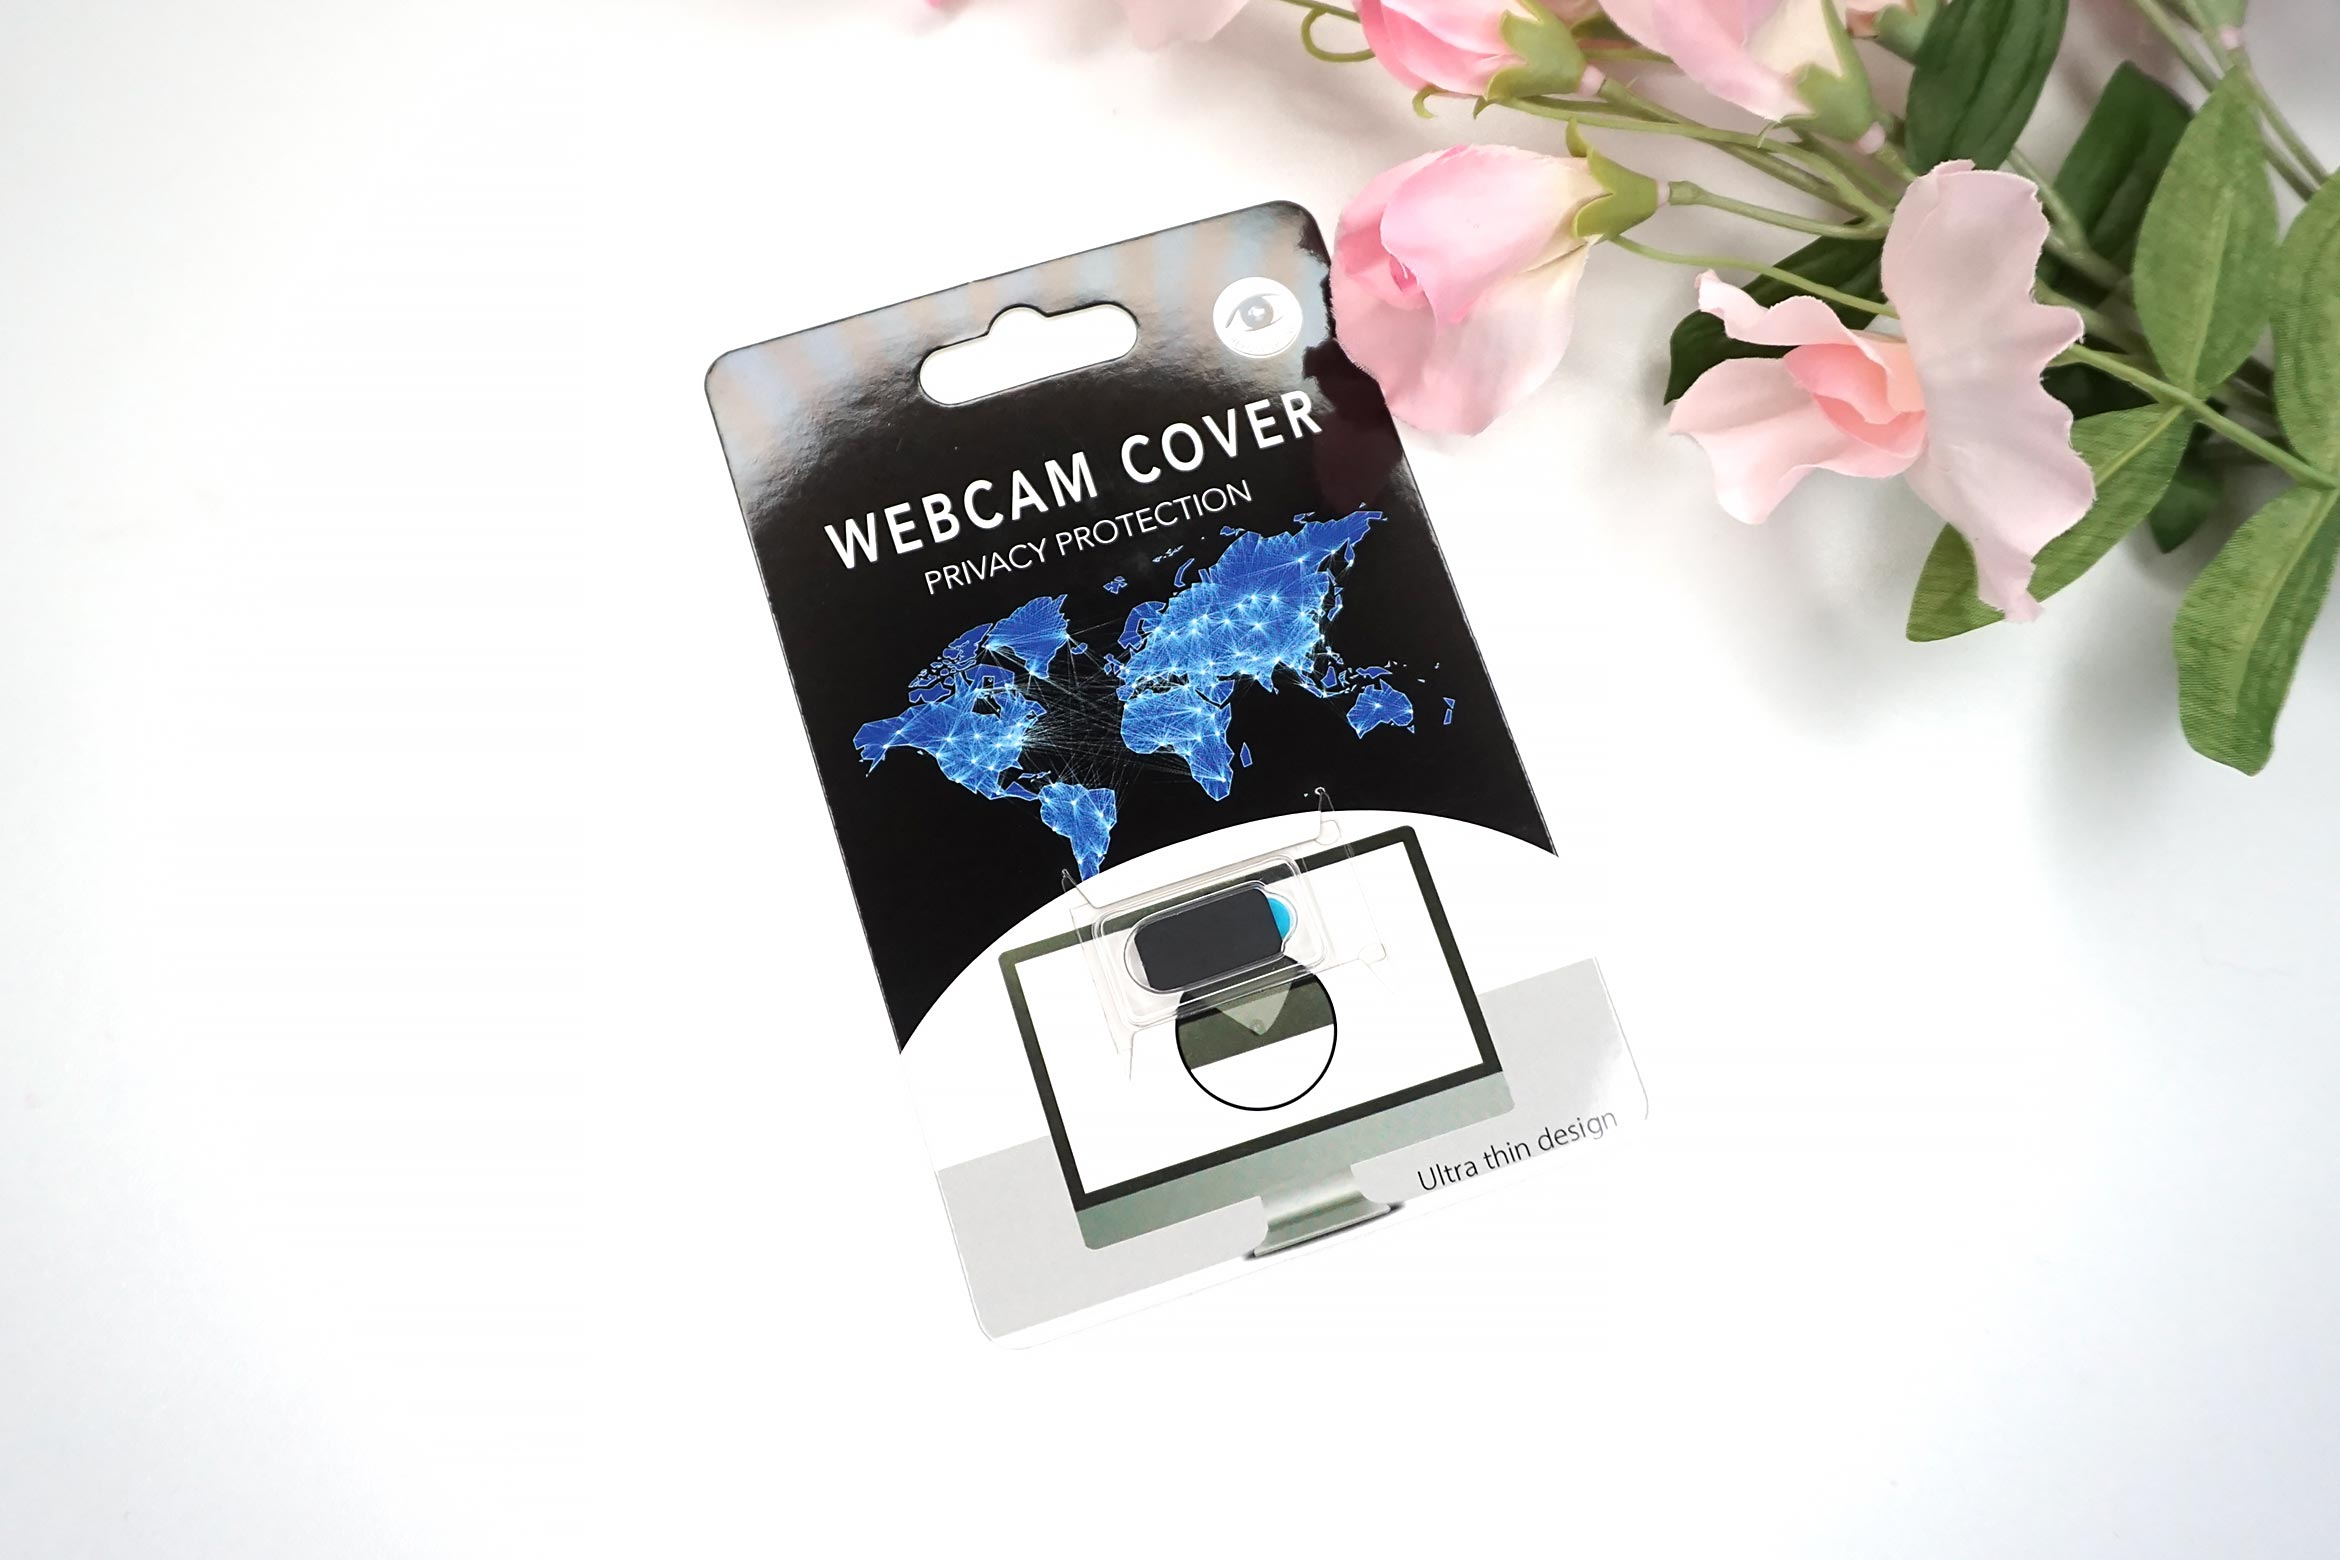 smartphonehoesjes-webcam-cover-review